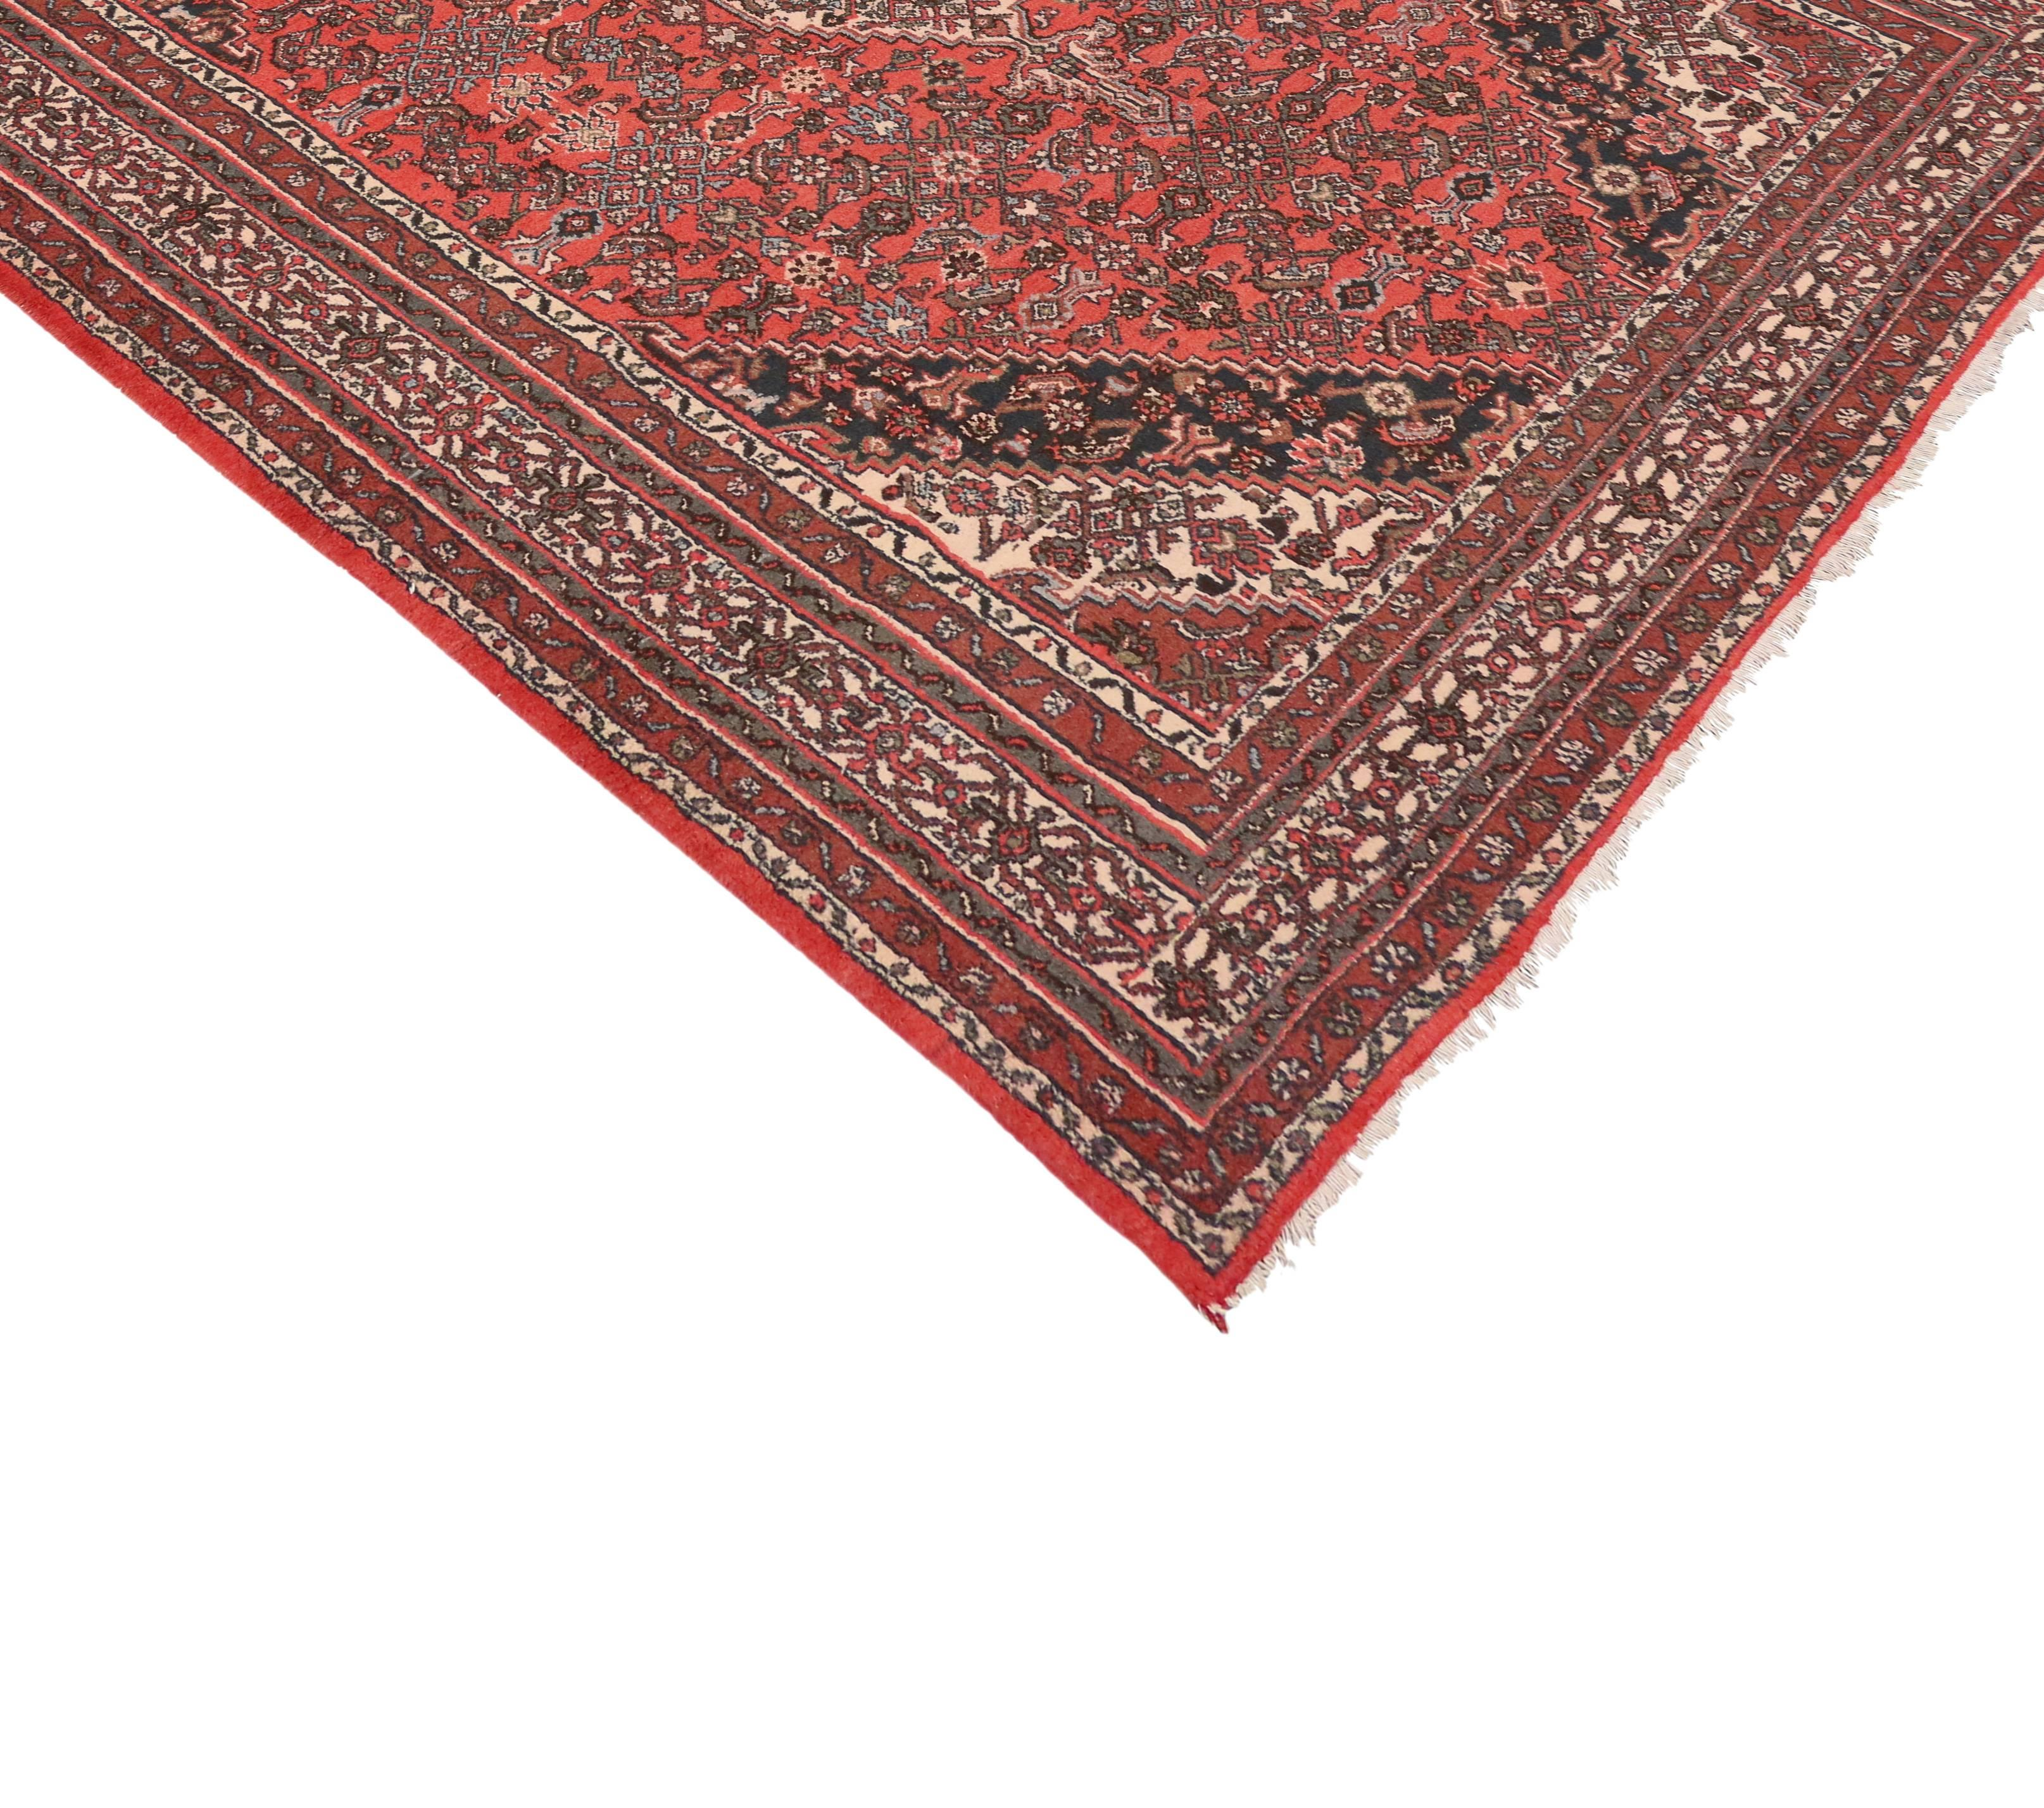 Providing An Element Of Comfort, Artistic Statement And Functional  Versatility, This Vintage Hamadan Persian